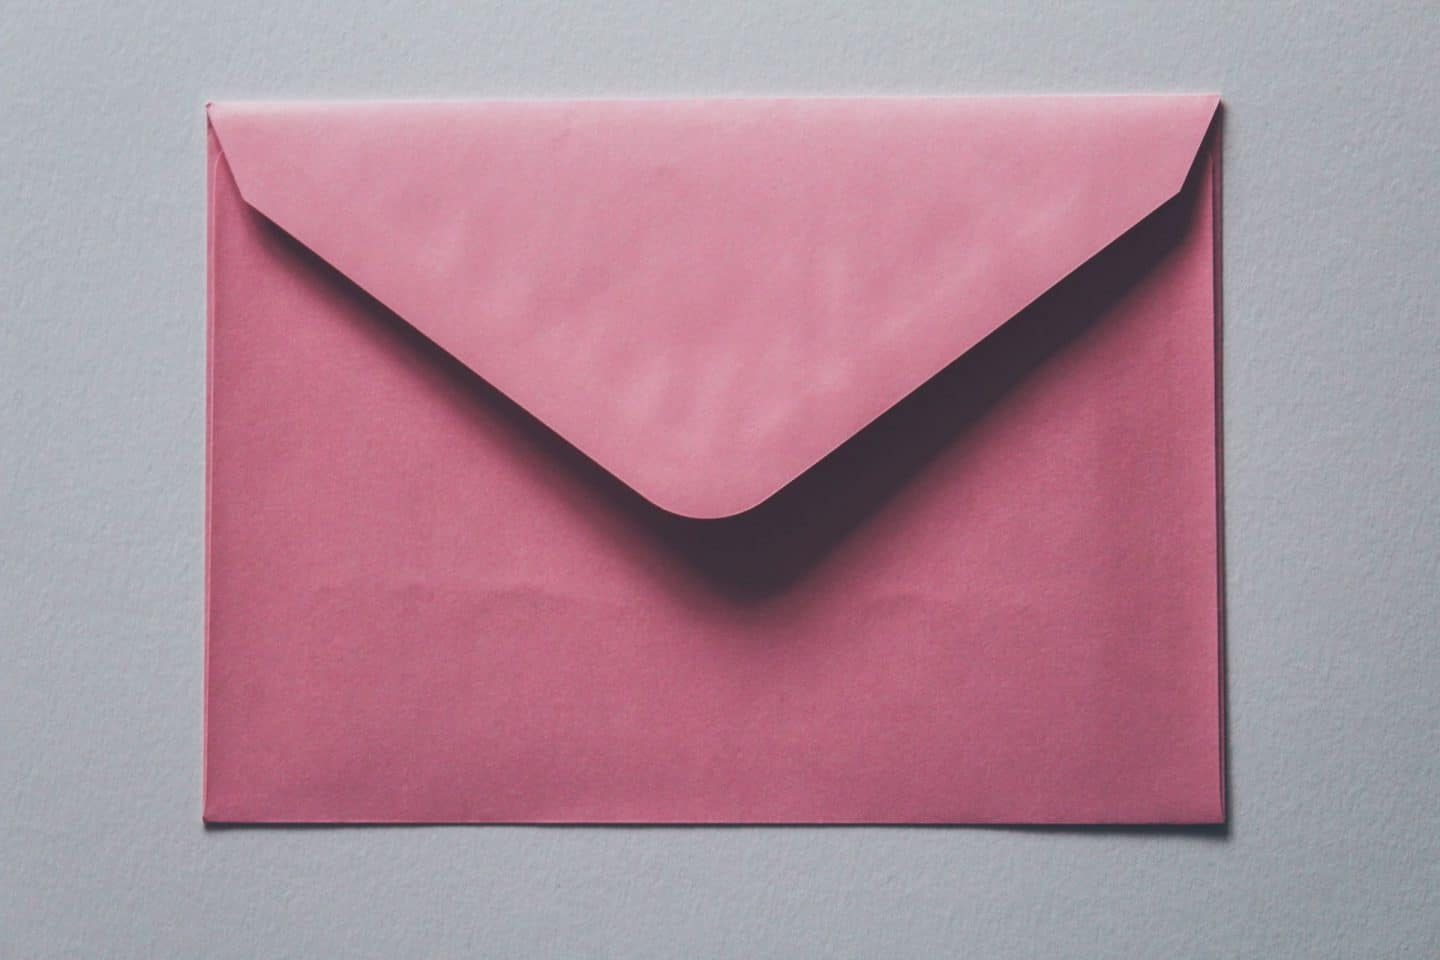 cheer someone up during lockdown: a pink envelope against a grey background